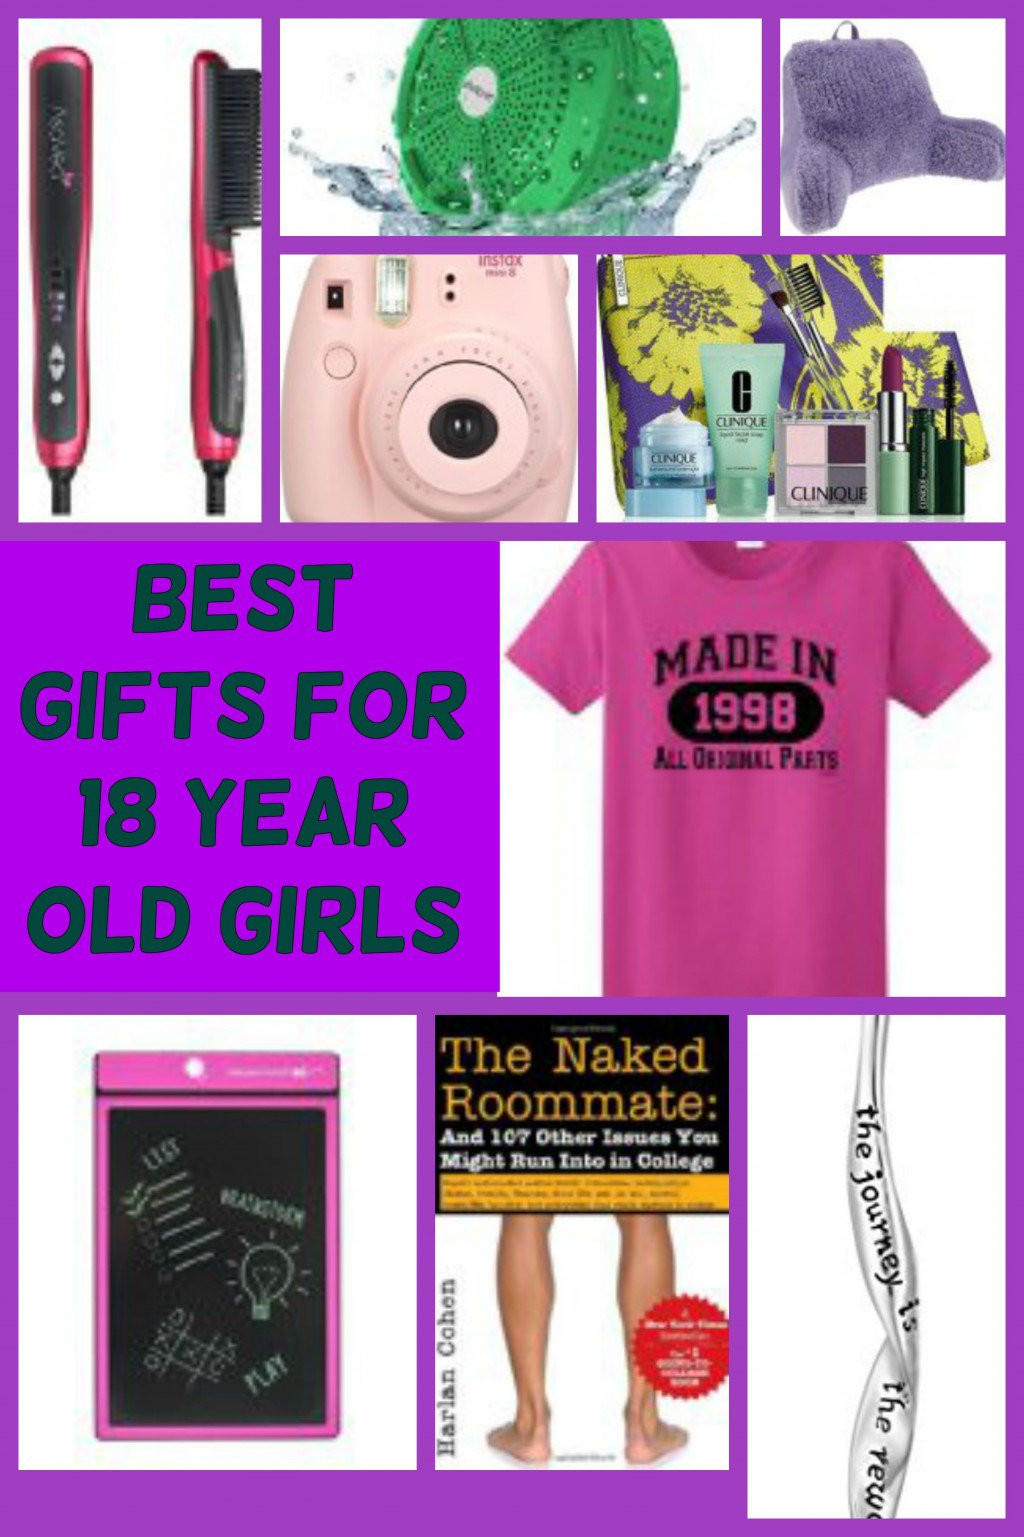 Best ideas about Birthday Gifts For 18 Year Old Female . Save or Pin Popular Birthday and Christmas Gift Ideas for 18 Year Old Now.